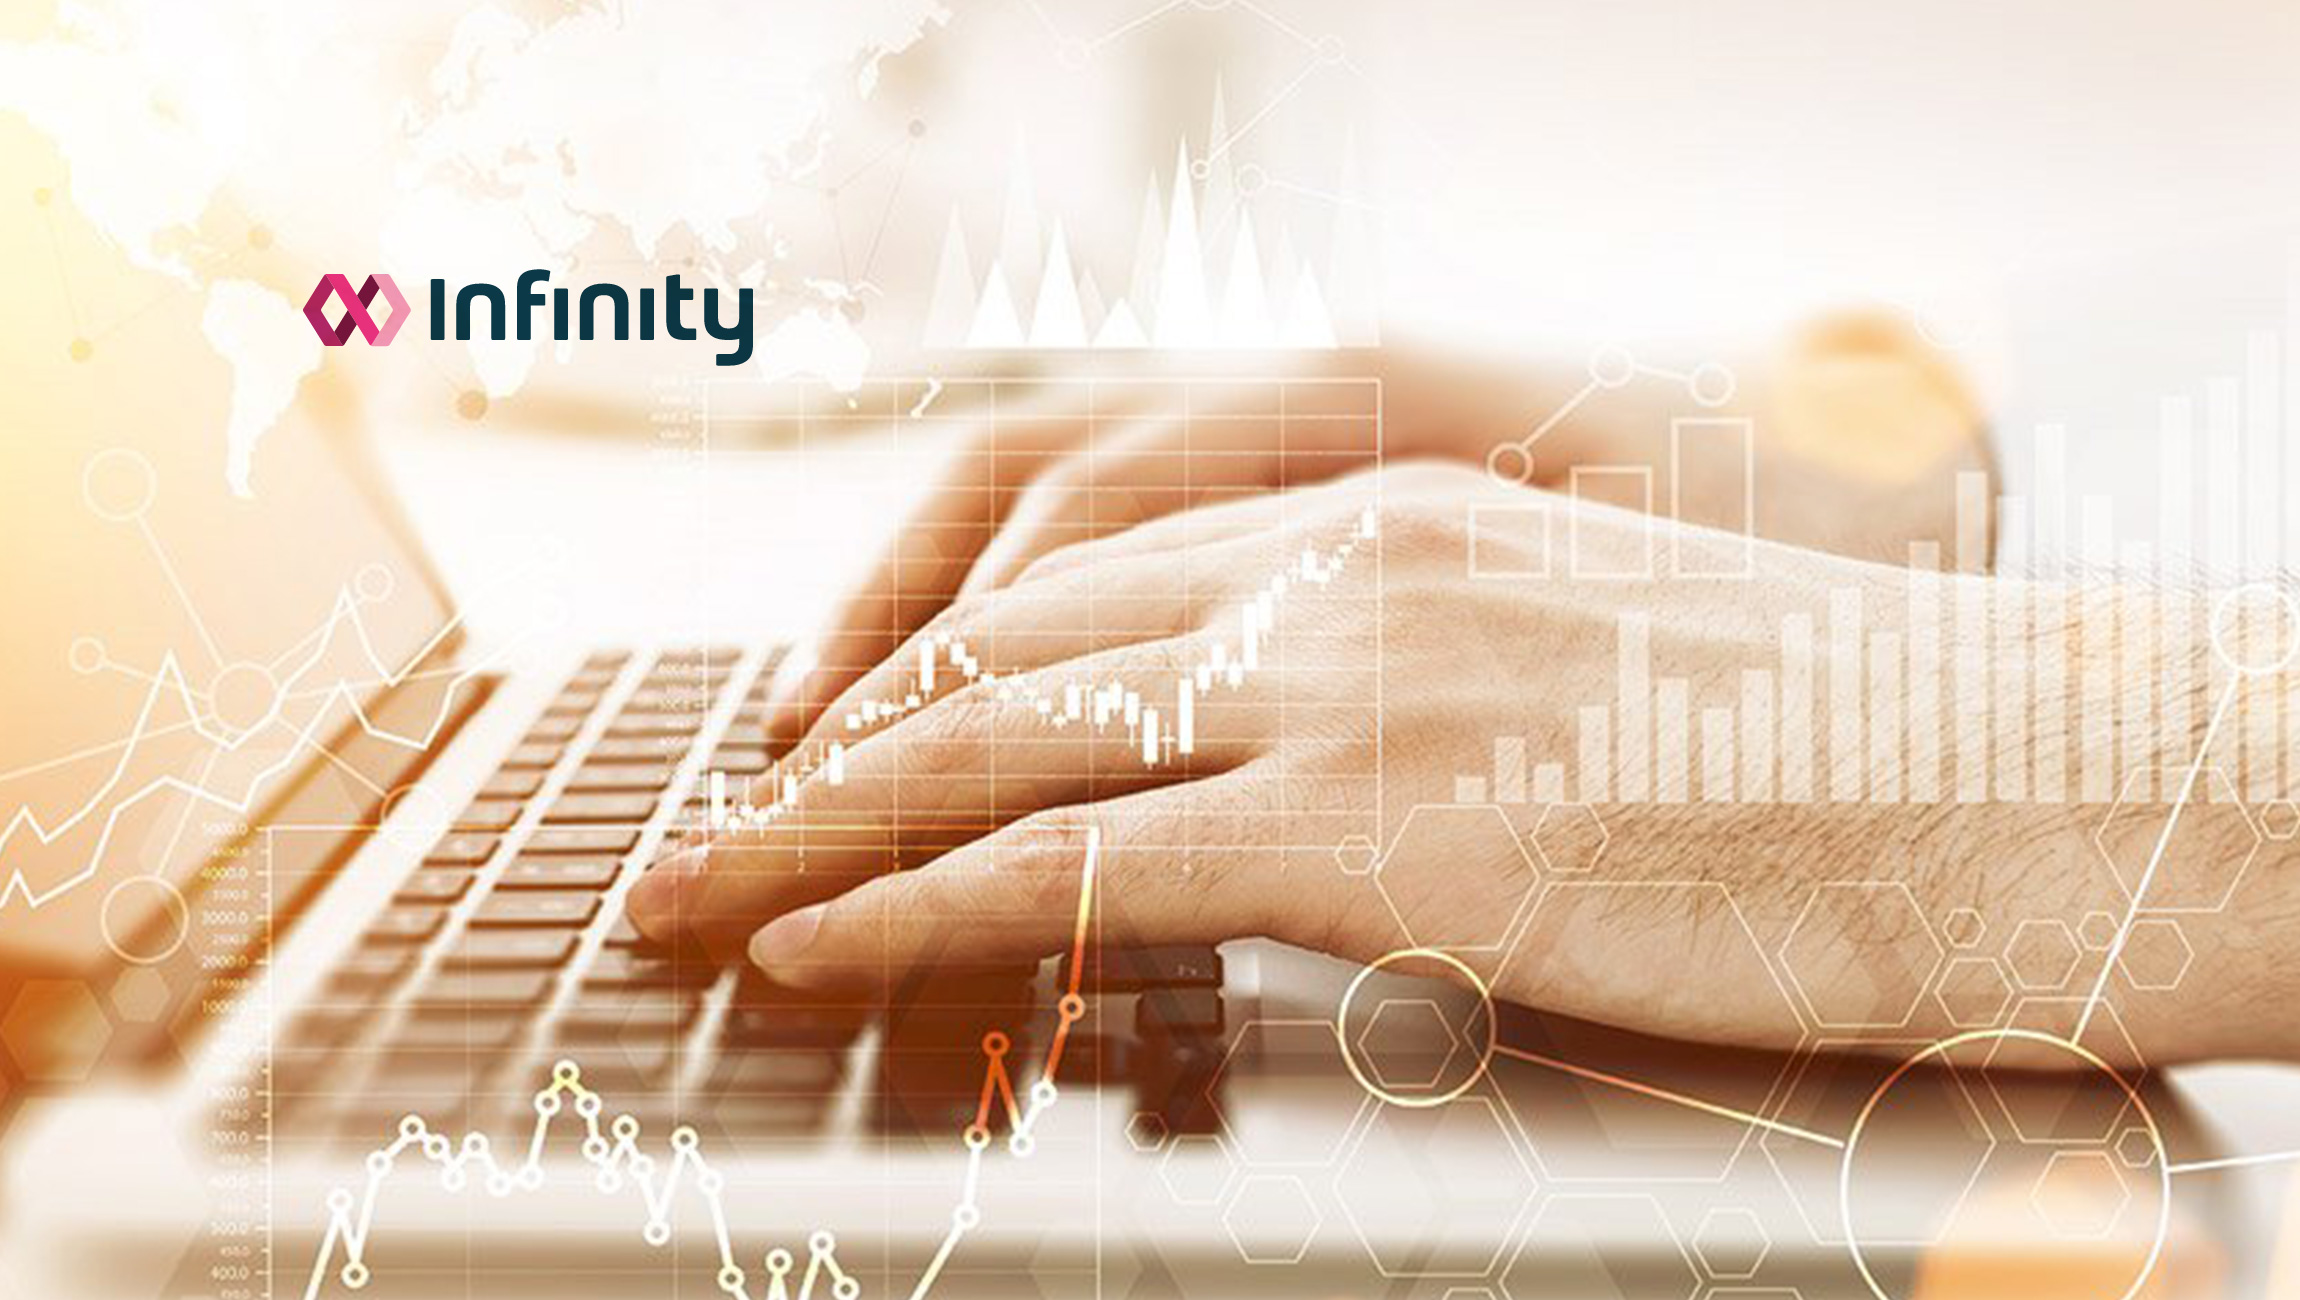 Infinity Launches UK's First Conversation Analytics Suite